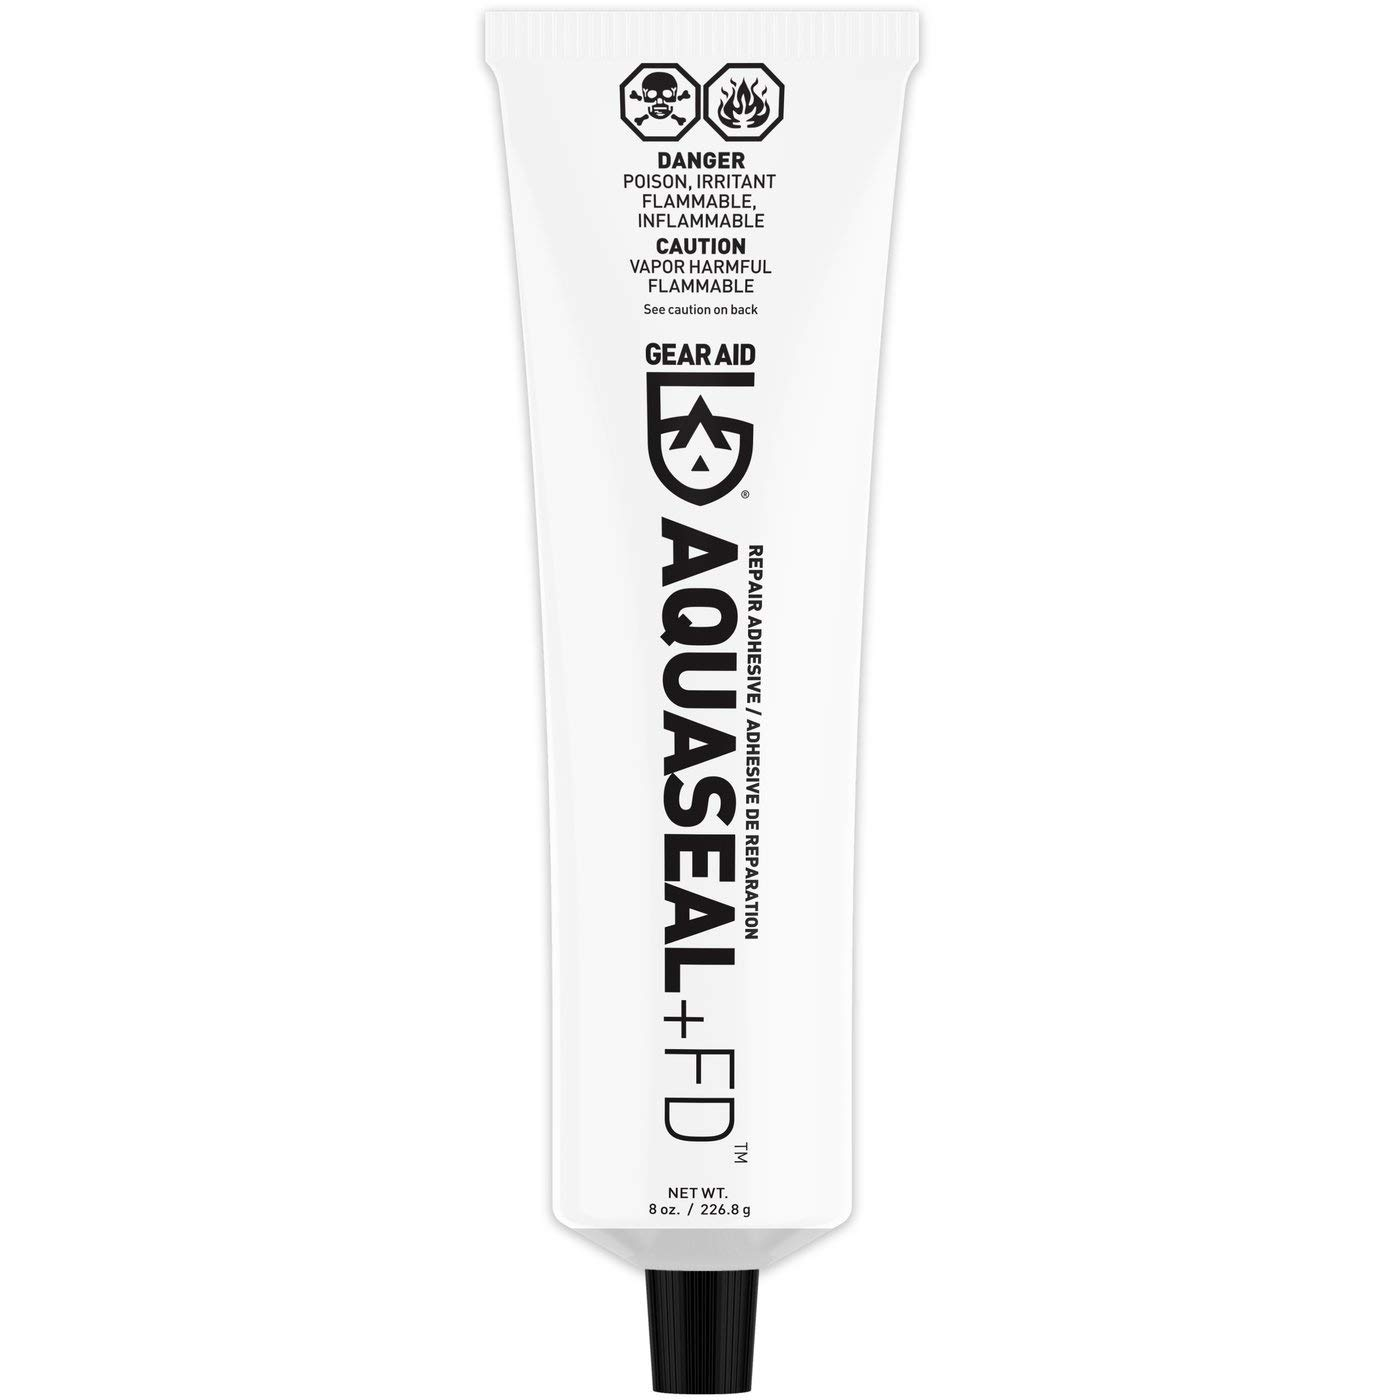 Gear Aid Aquaseal Urethane Repair Adhesive, 8 oz Tube